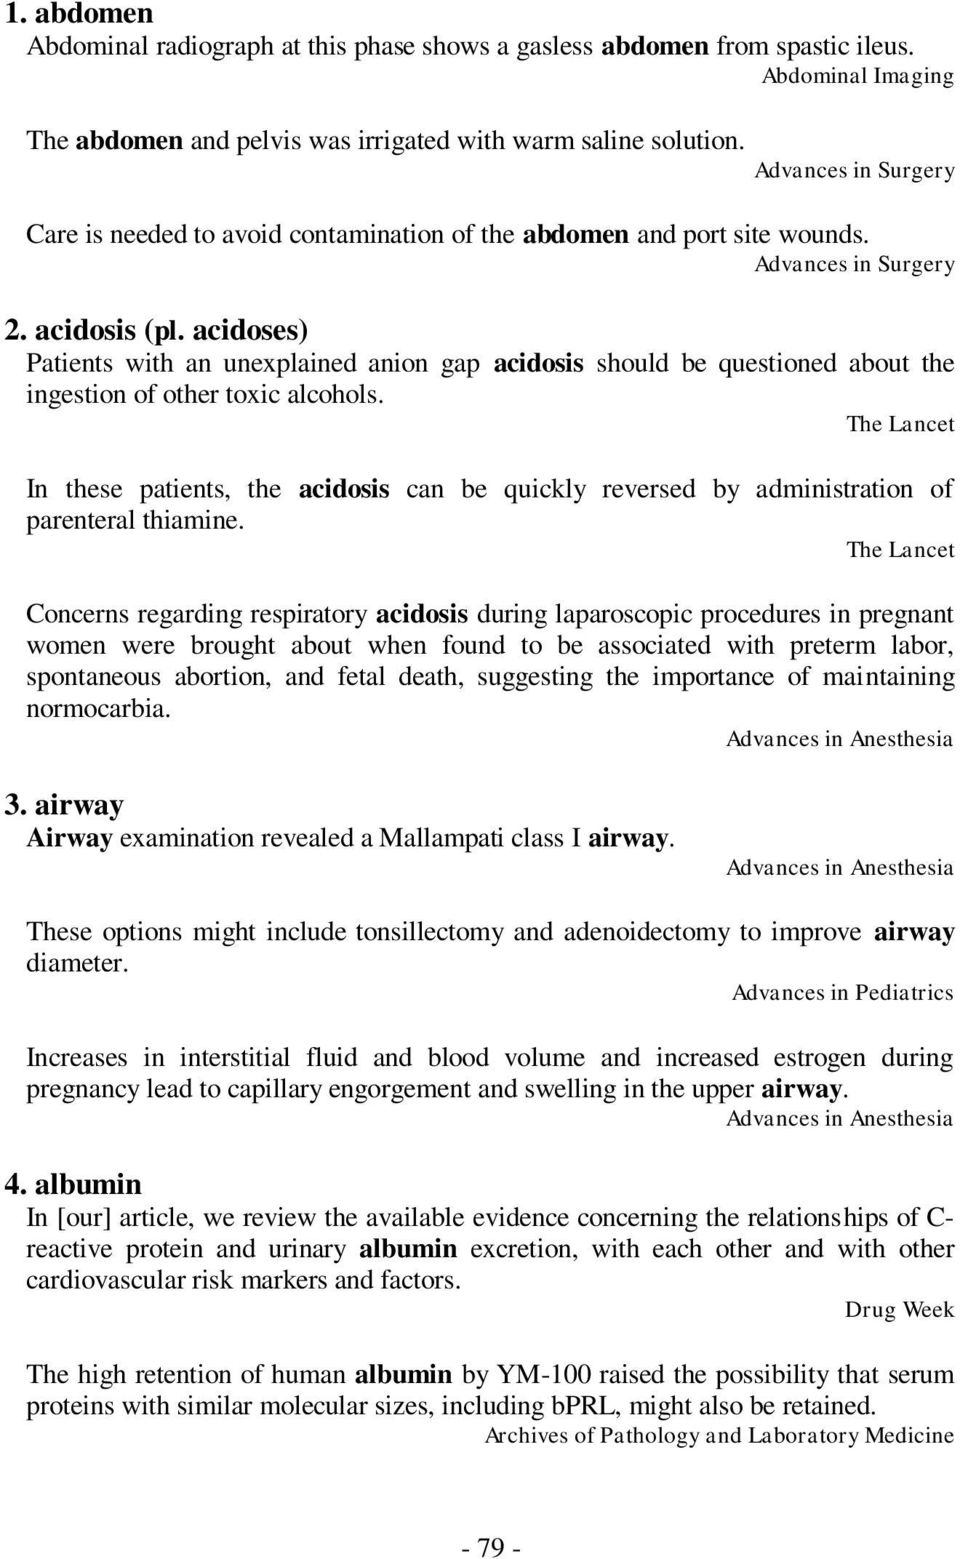 acidoses) Patients with an unexplained anion gap acidosis should be questioned about the ingestion of other toxic alcohols.